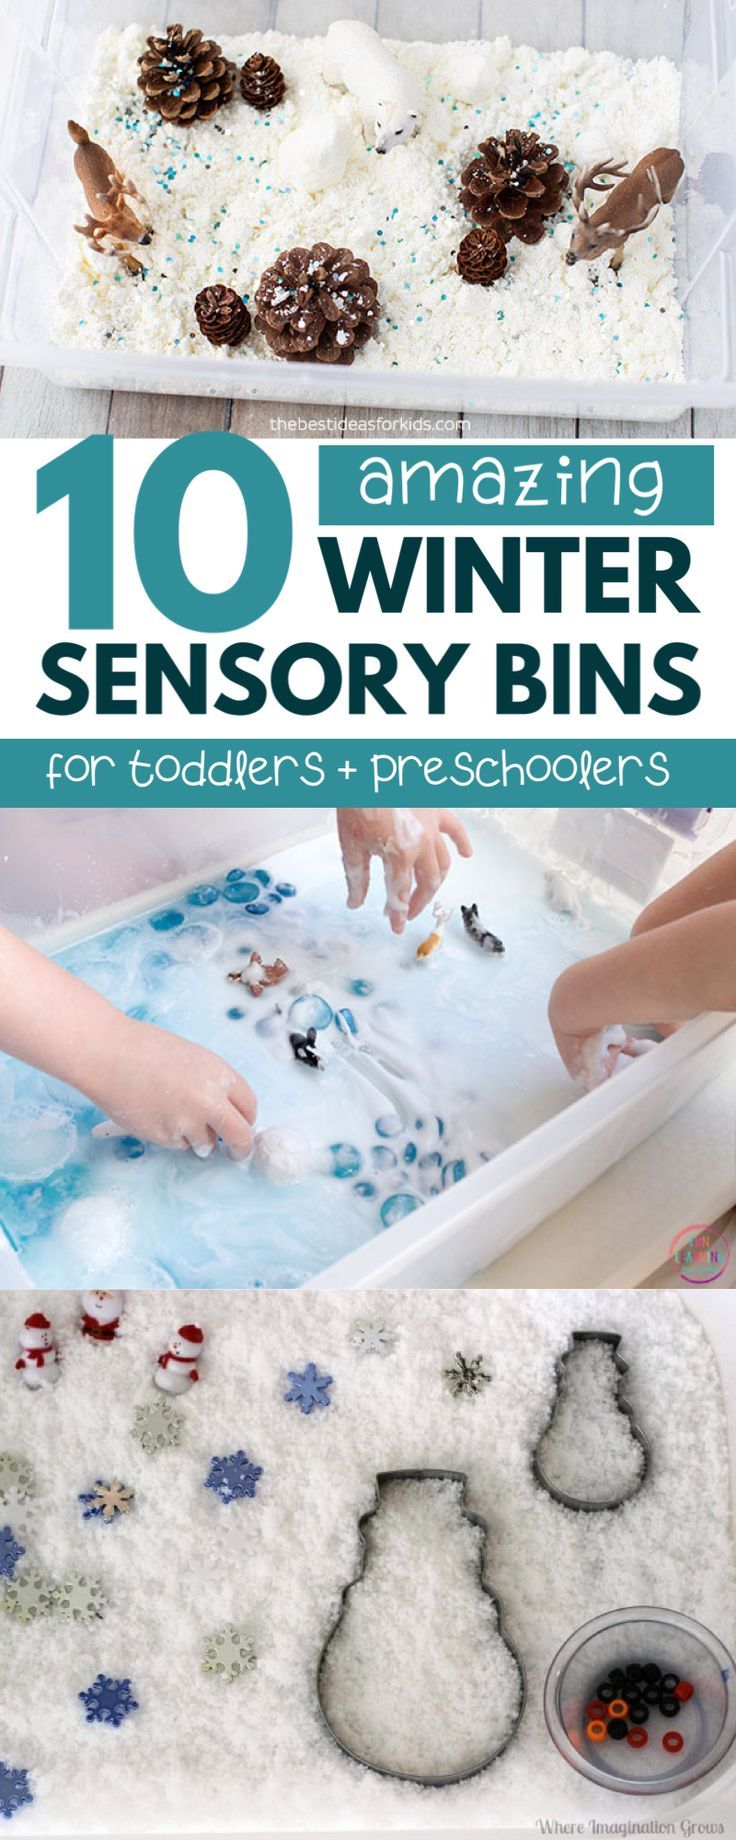 Photo of Winter Sensory Bins for Toddlers and Preschoolers | Happy Toddler Club